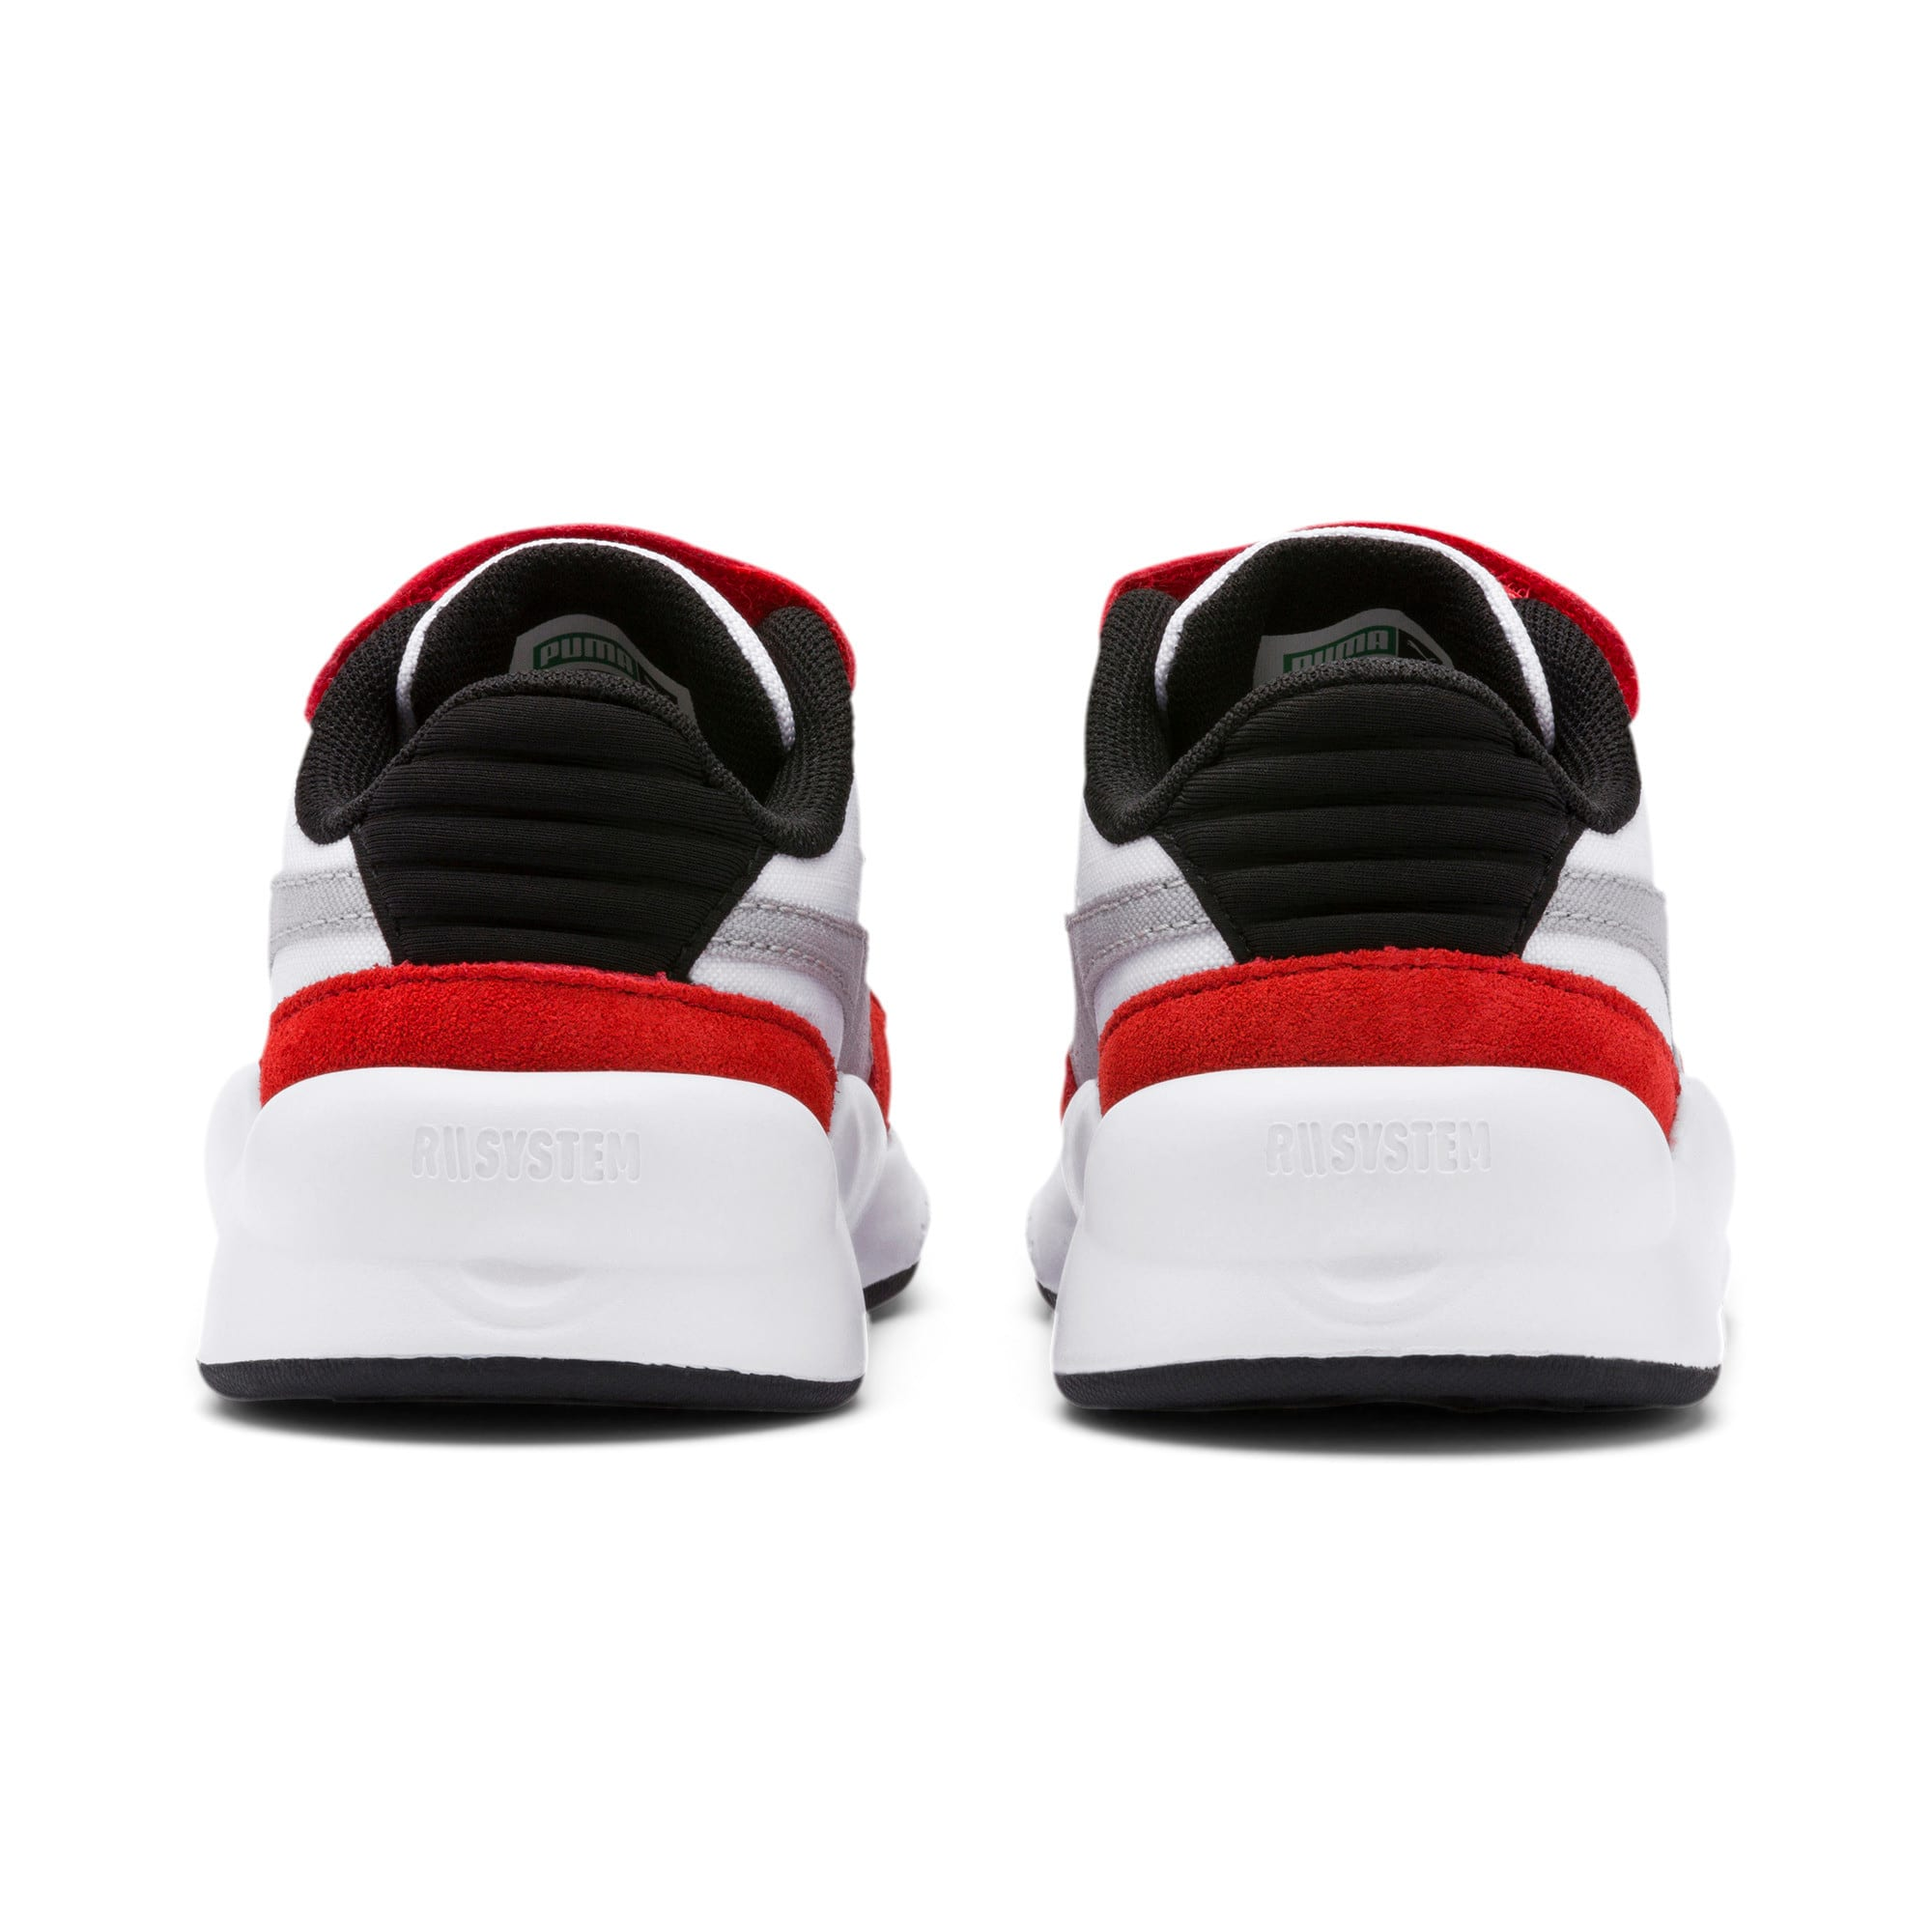 Thumbnail 3 of RS 9.8 Space AC Toddler Shoes, Puma White-High Risk Red, medium